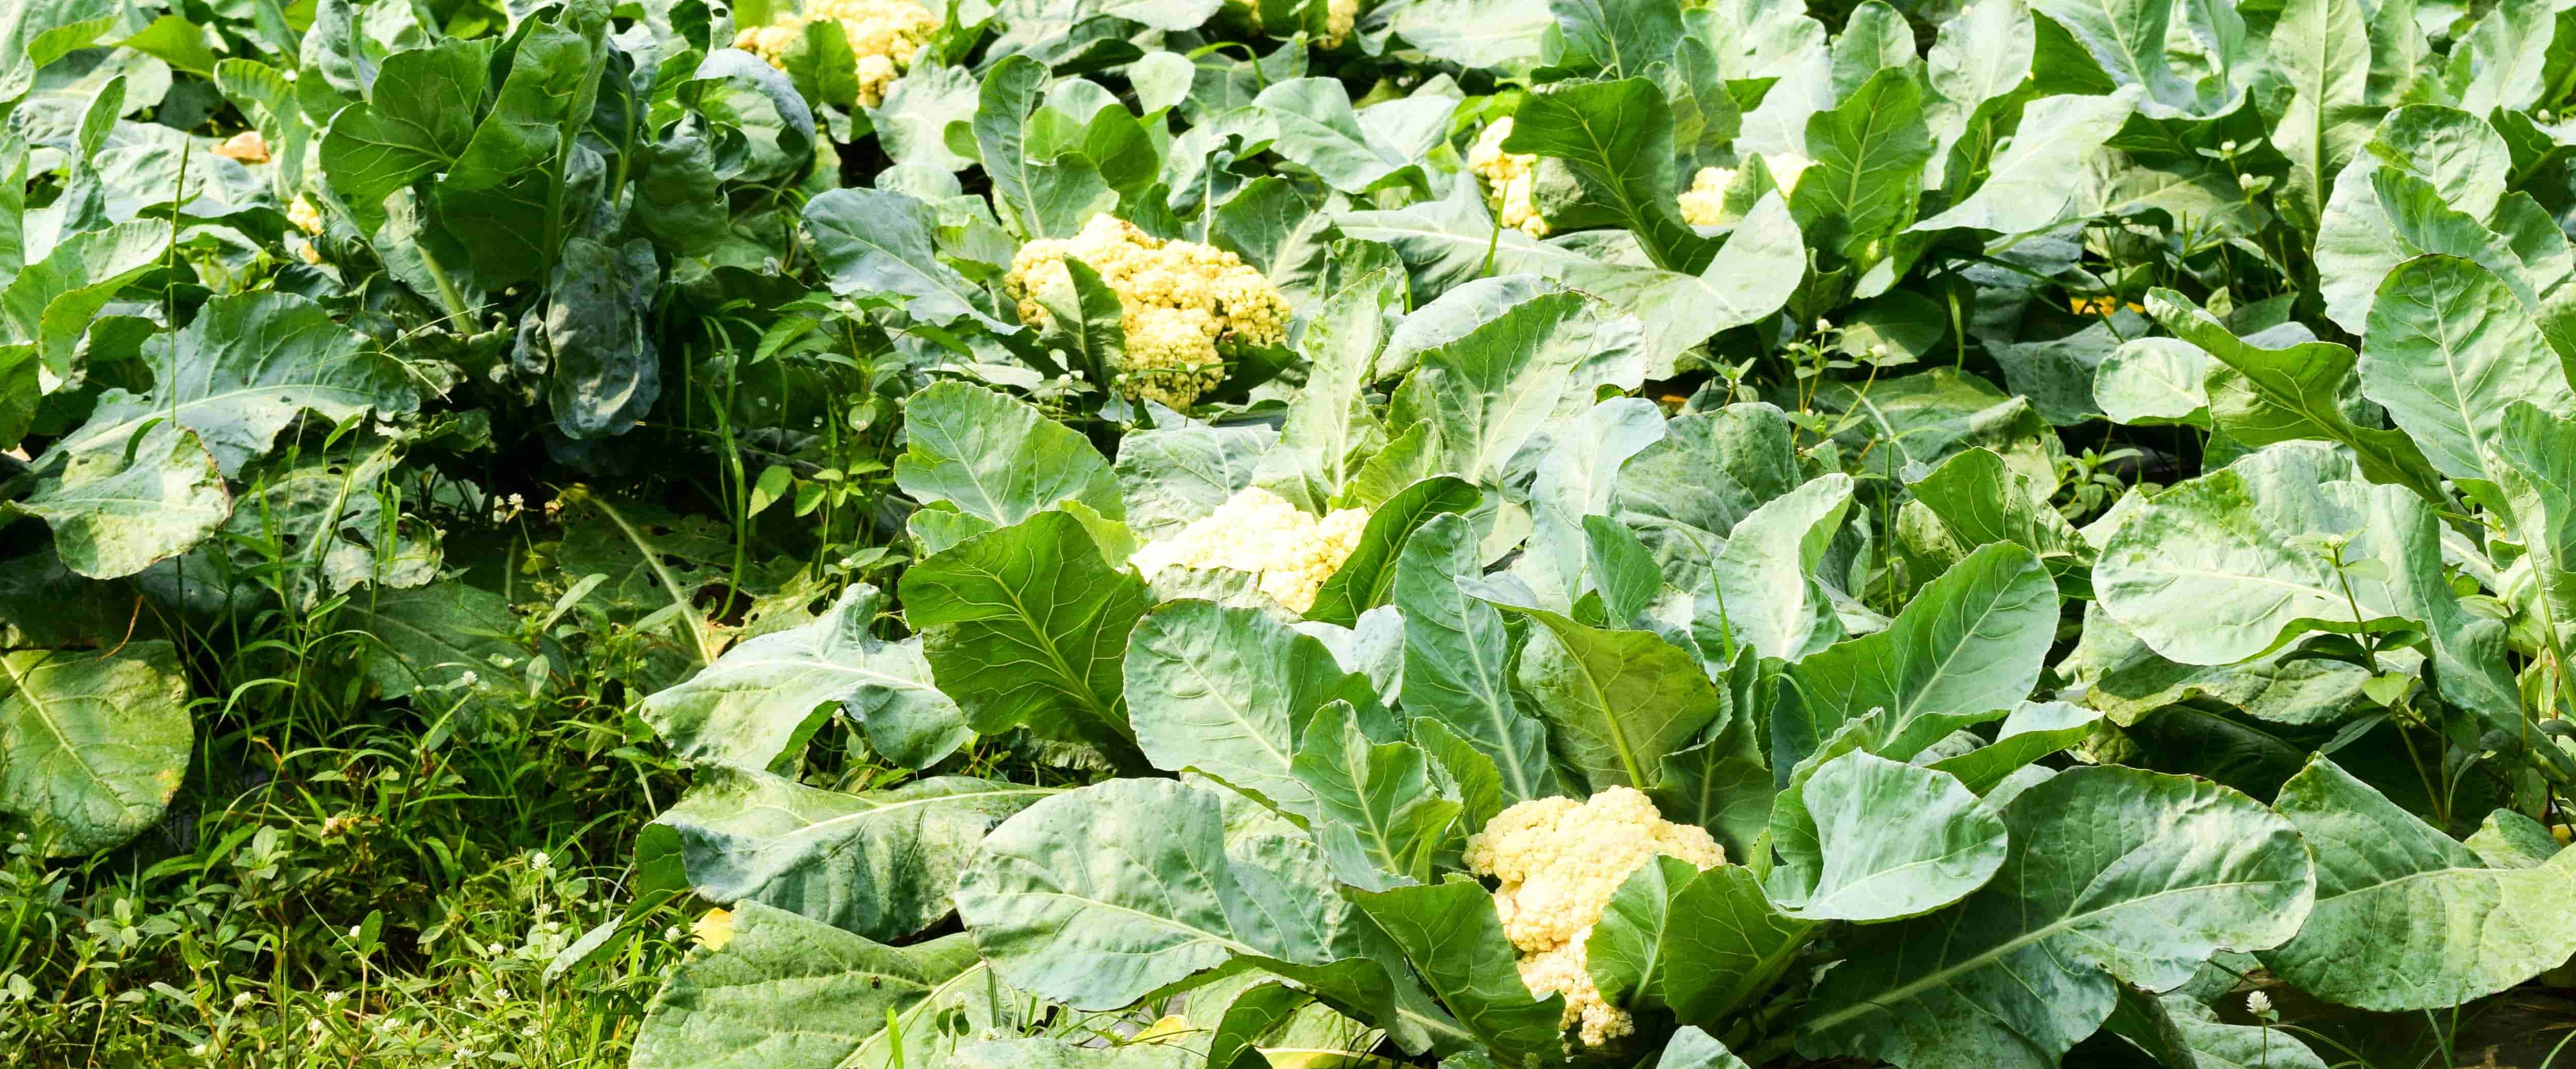 How to prepare nursery for cauliflower cultivation?